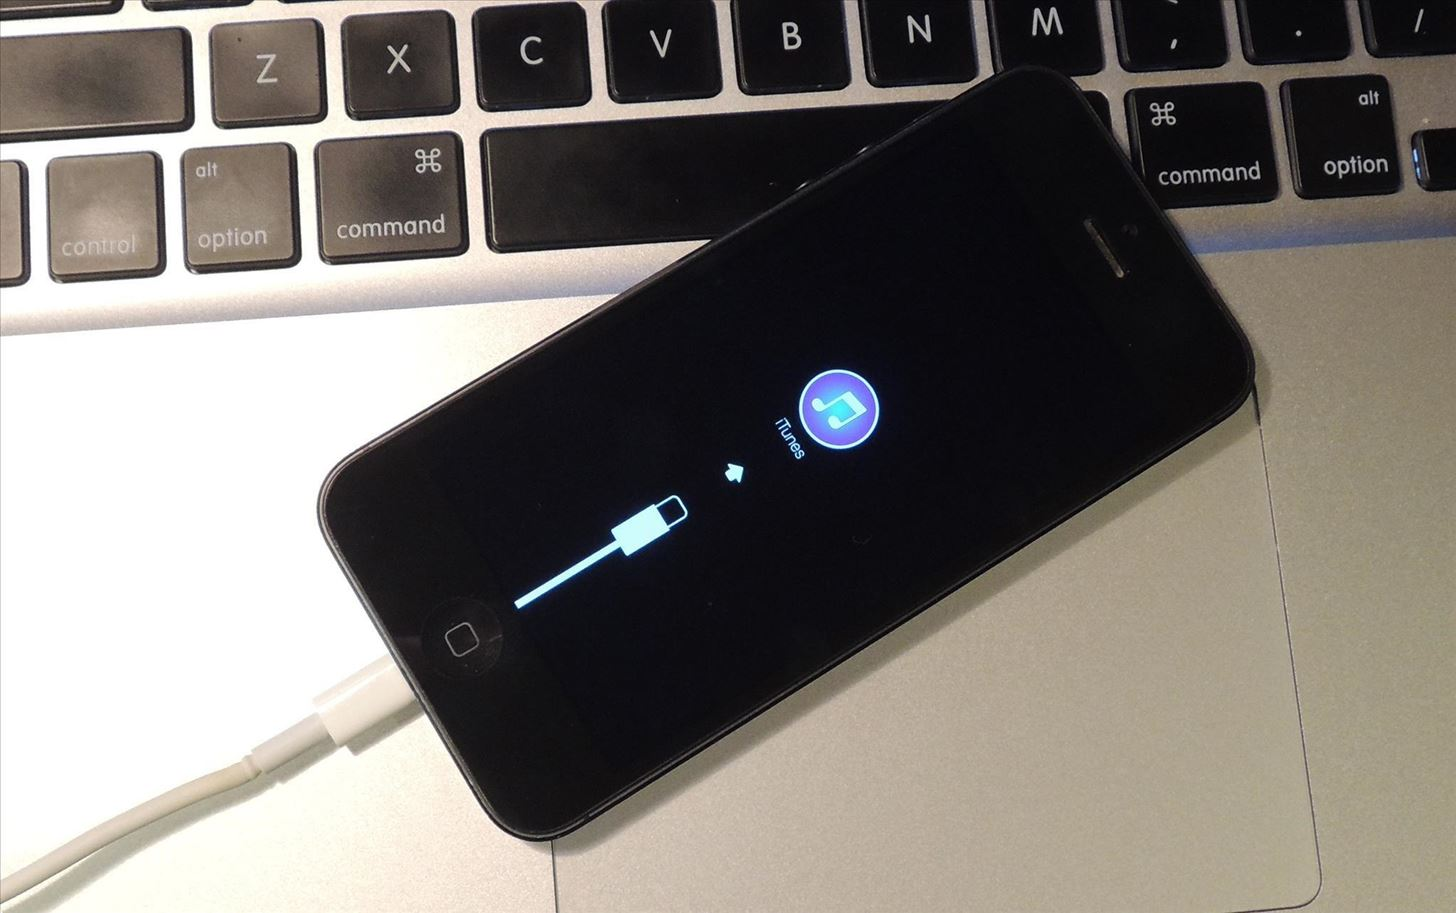 How to Downgrade Your iPhone from iOS 8 Beta to iOS 7.1.1